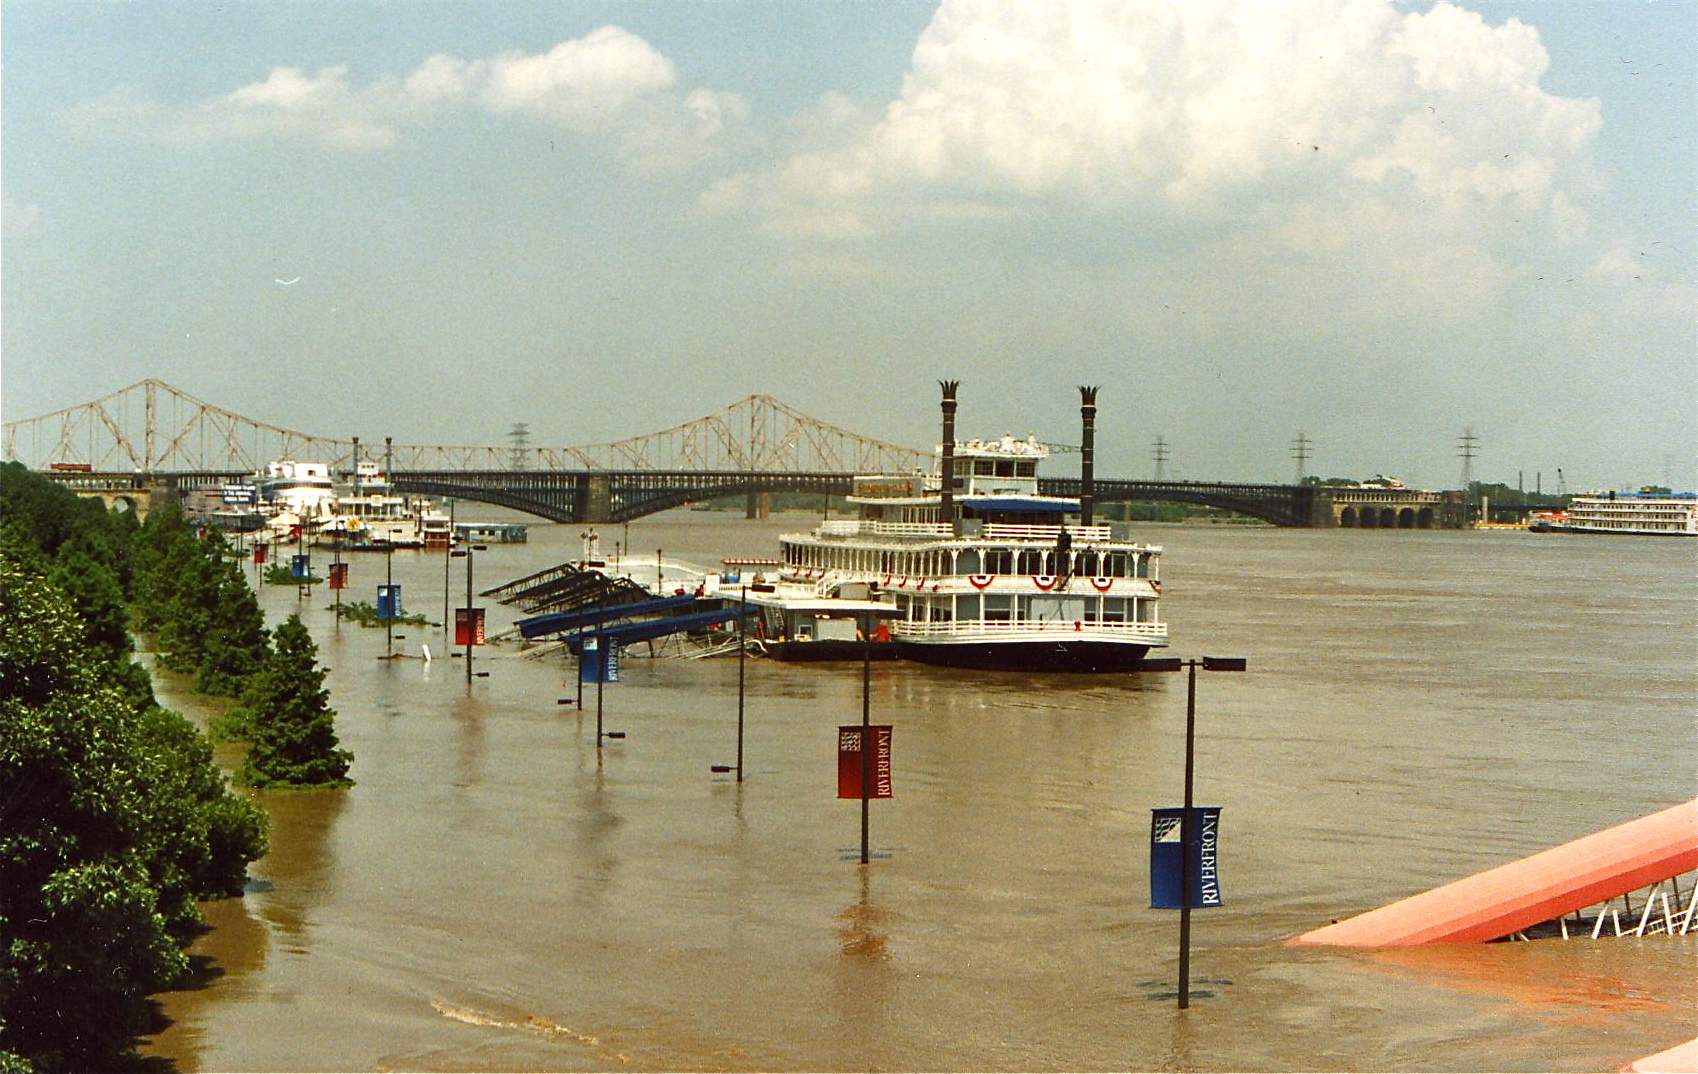 Remembering the Great Flood of 1993